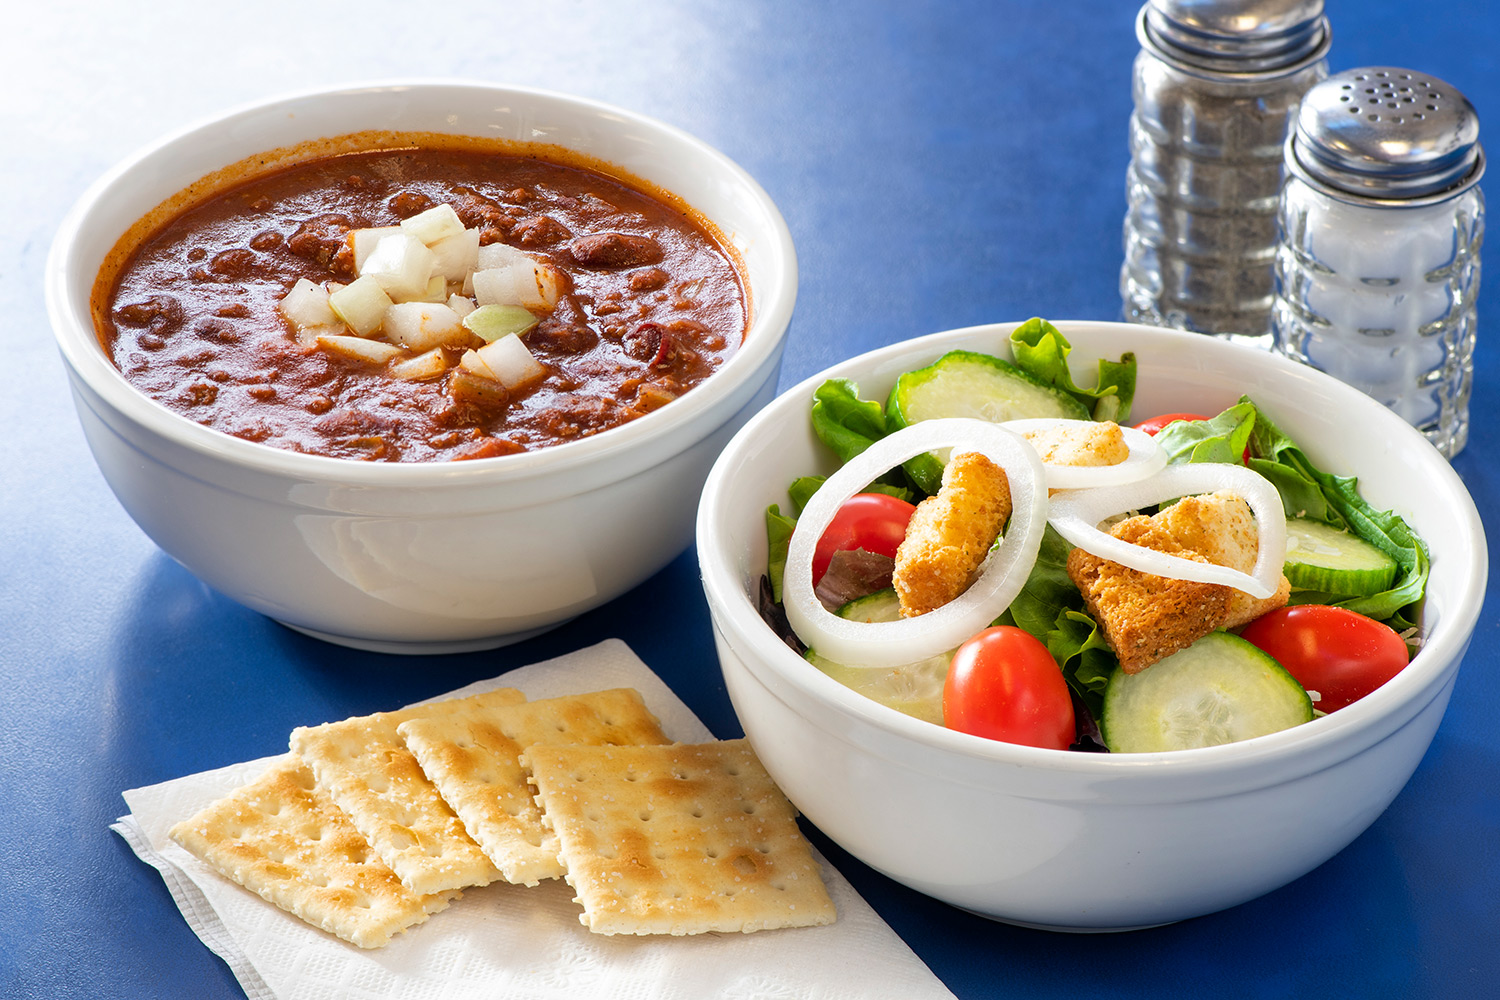 Chili and side salad and crackers